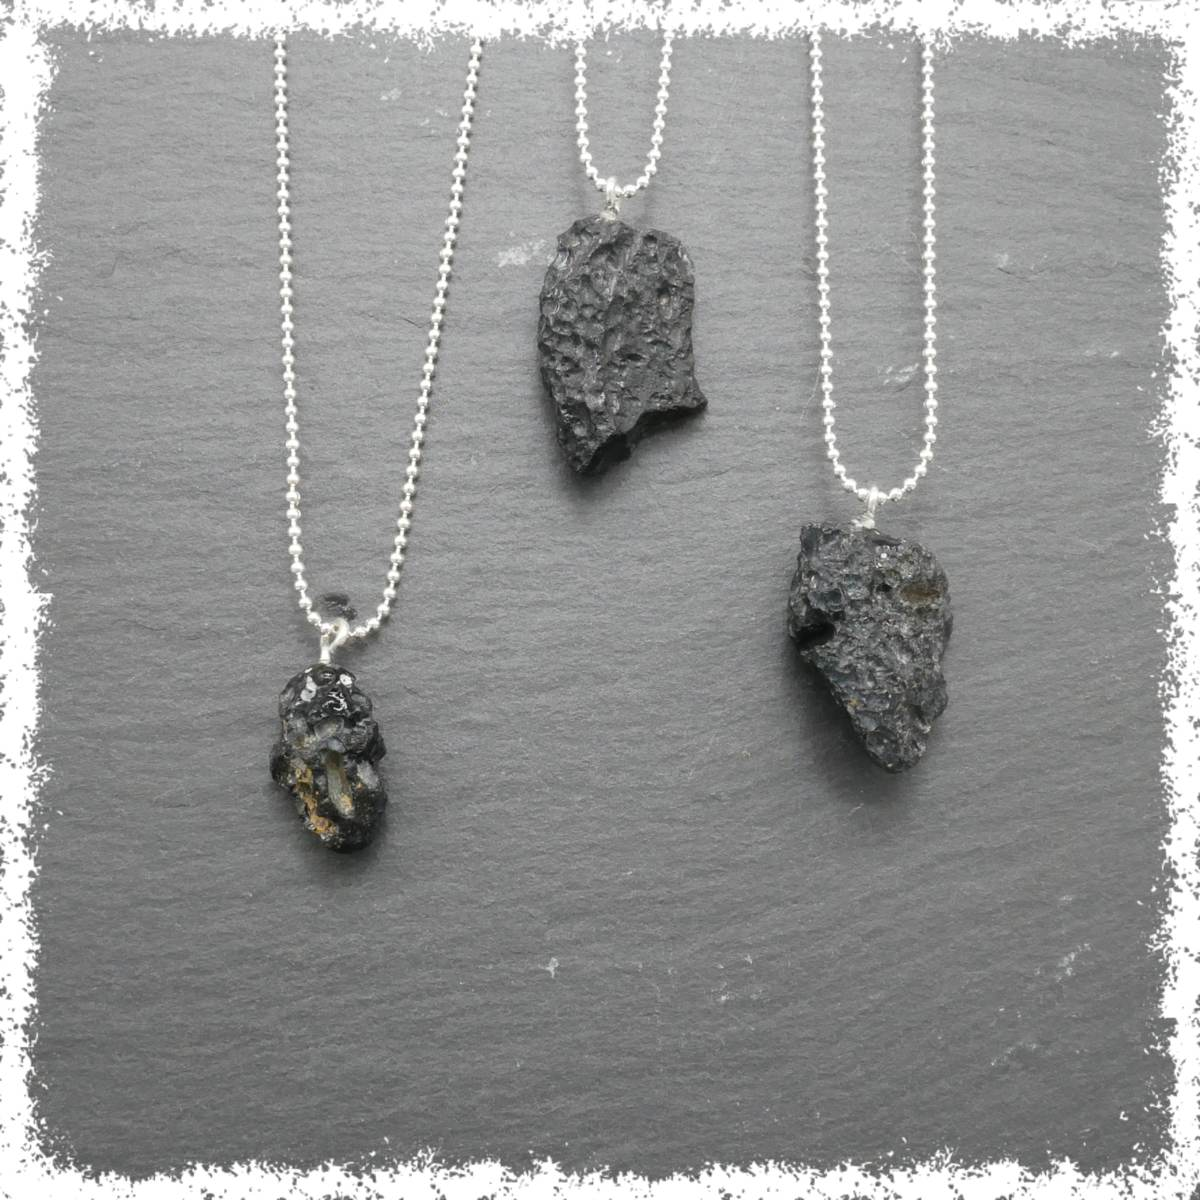 tektite meanings and tektite jewelry for spirituality